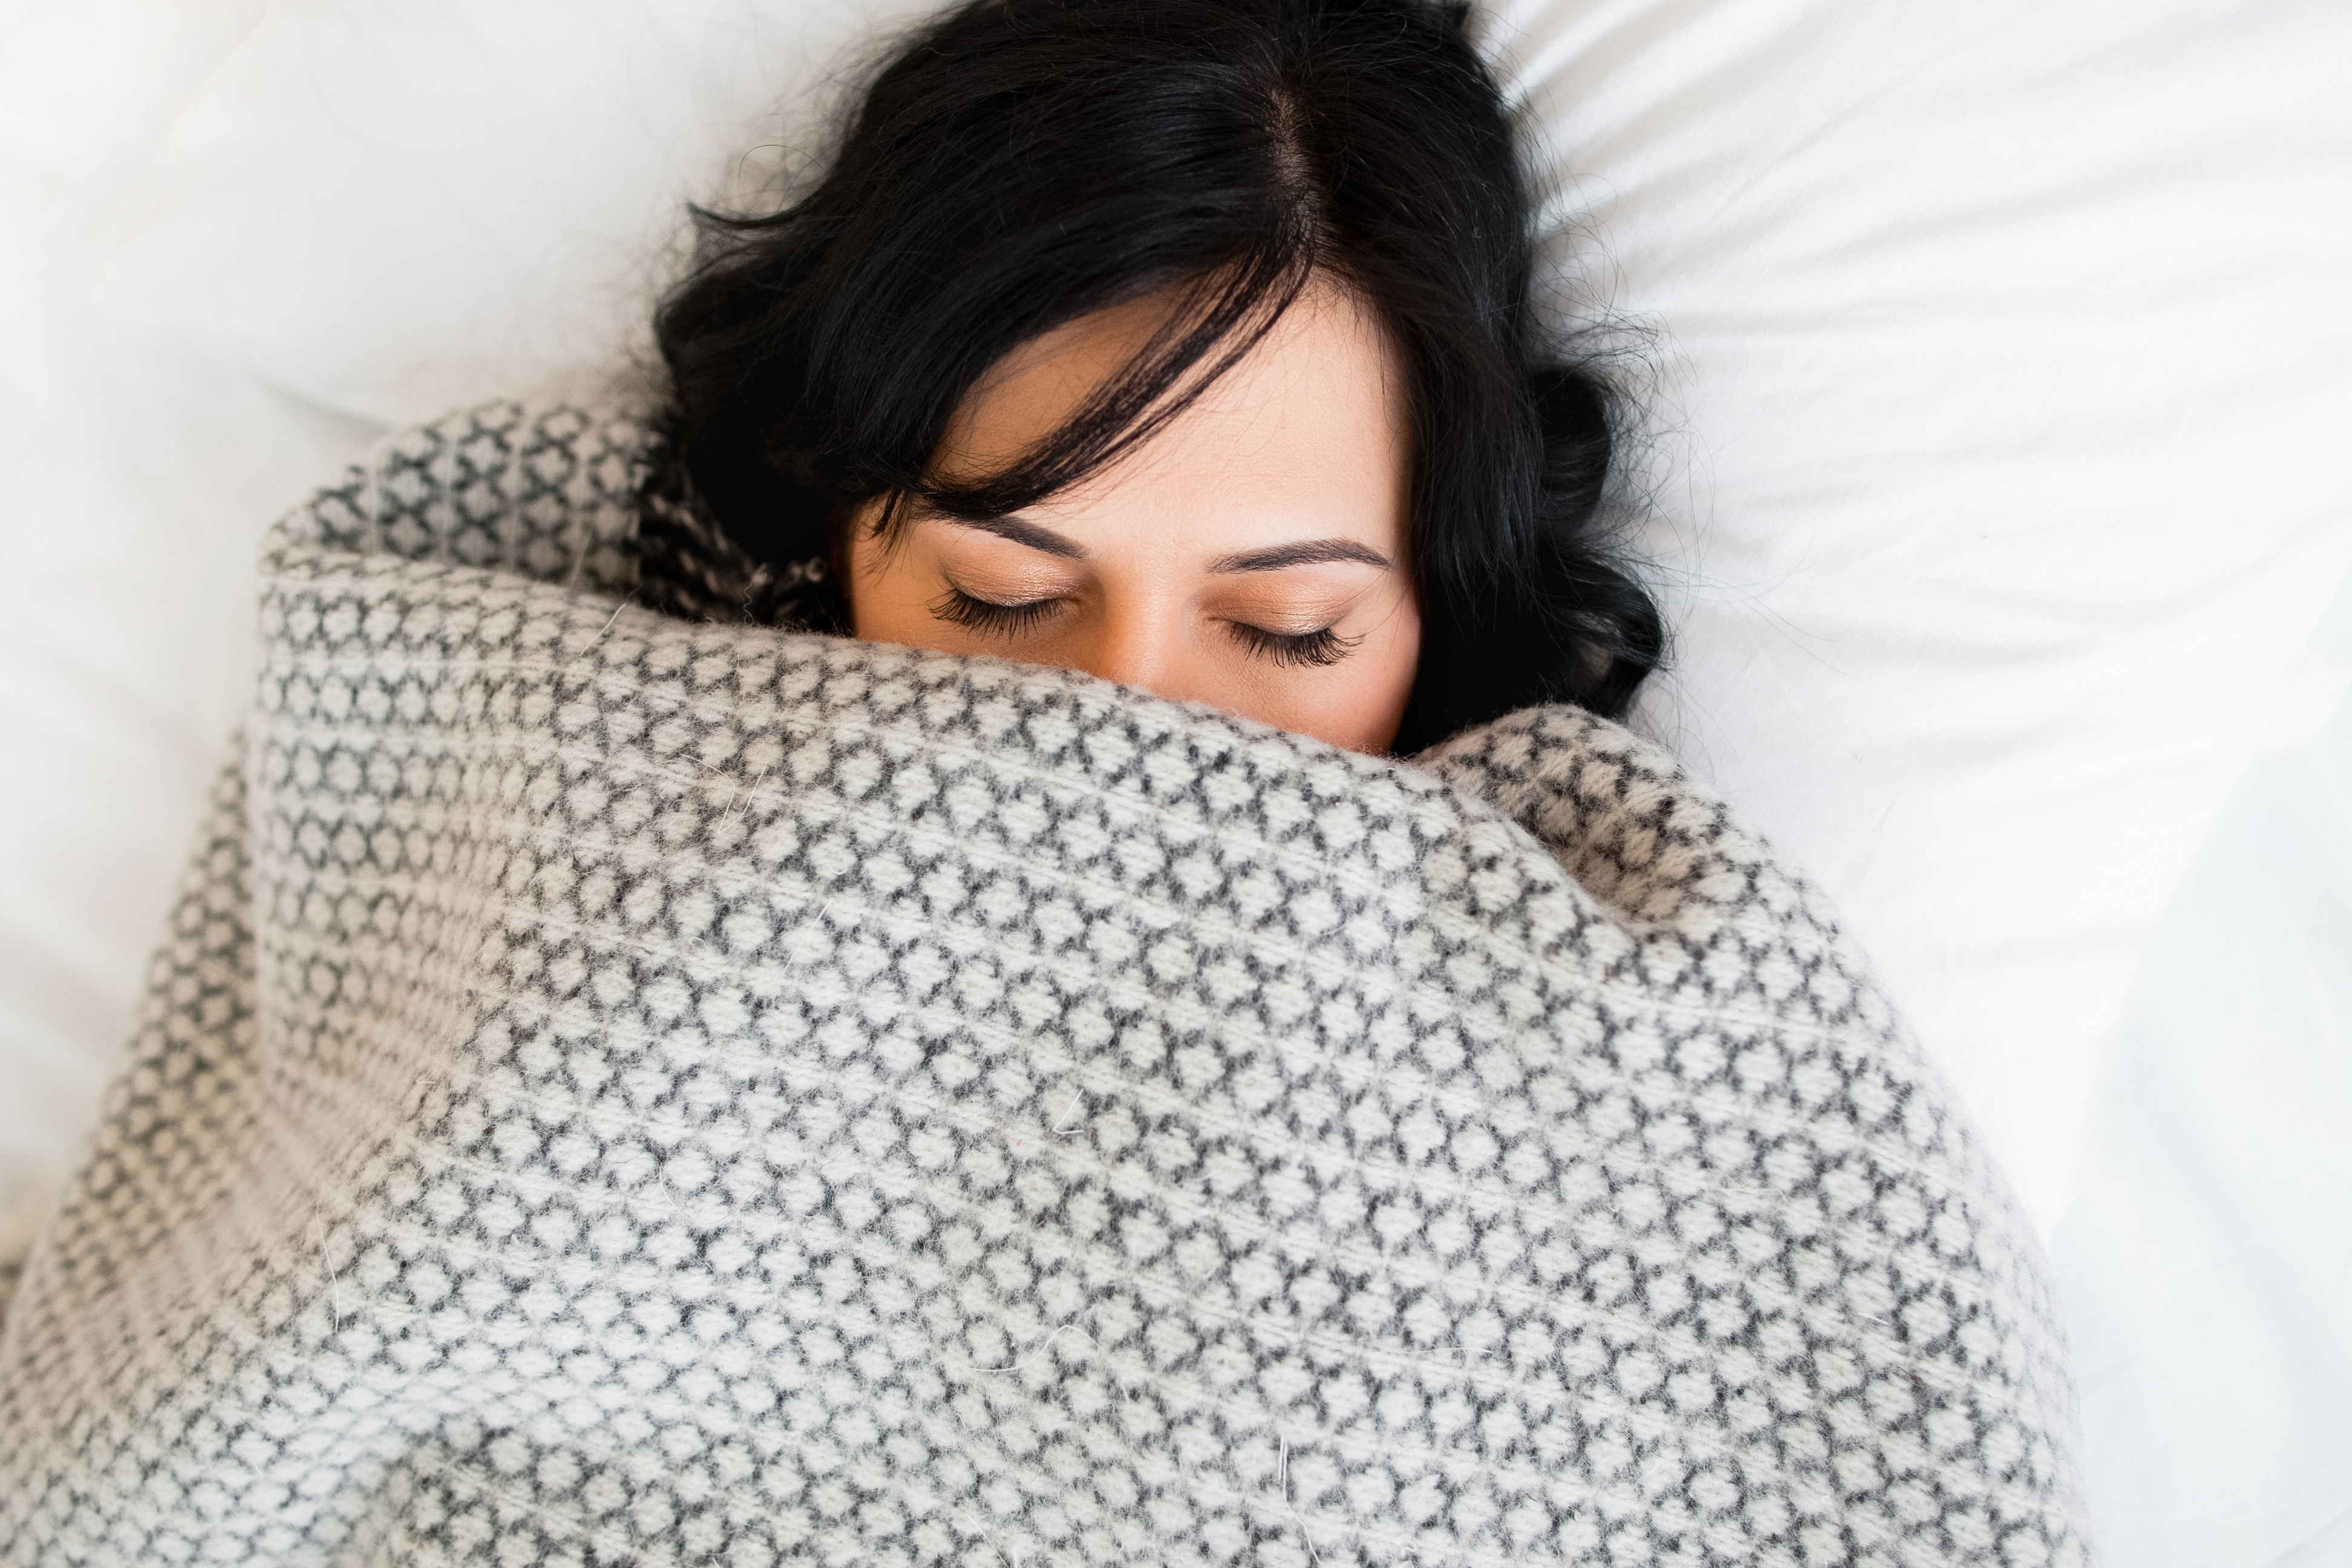 Can Room Temperature Affect Your Quality of Sleep?